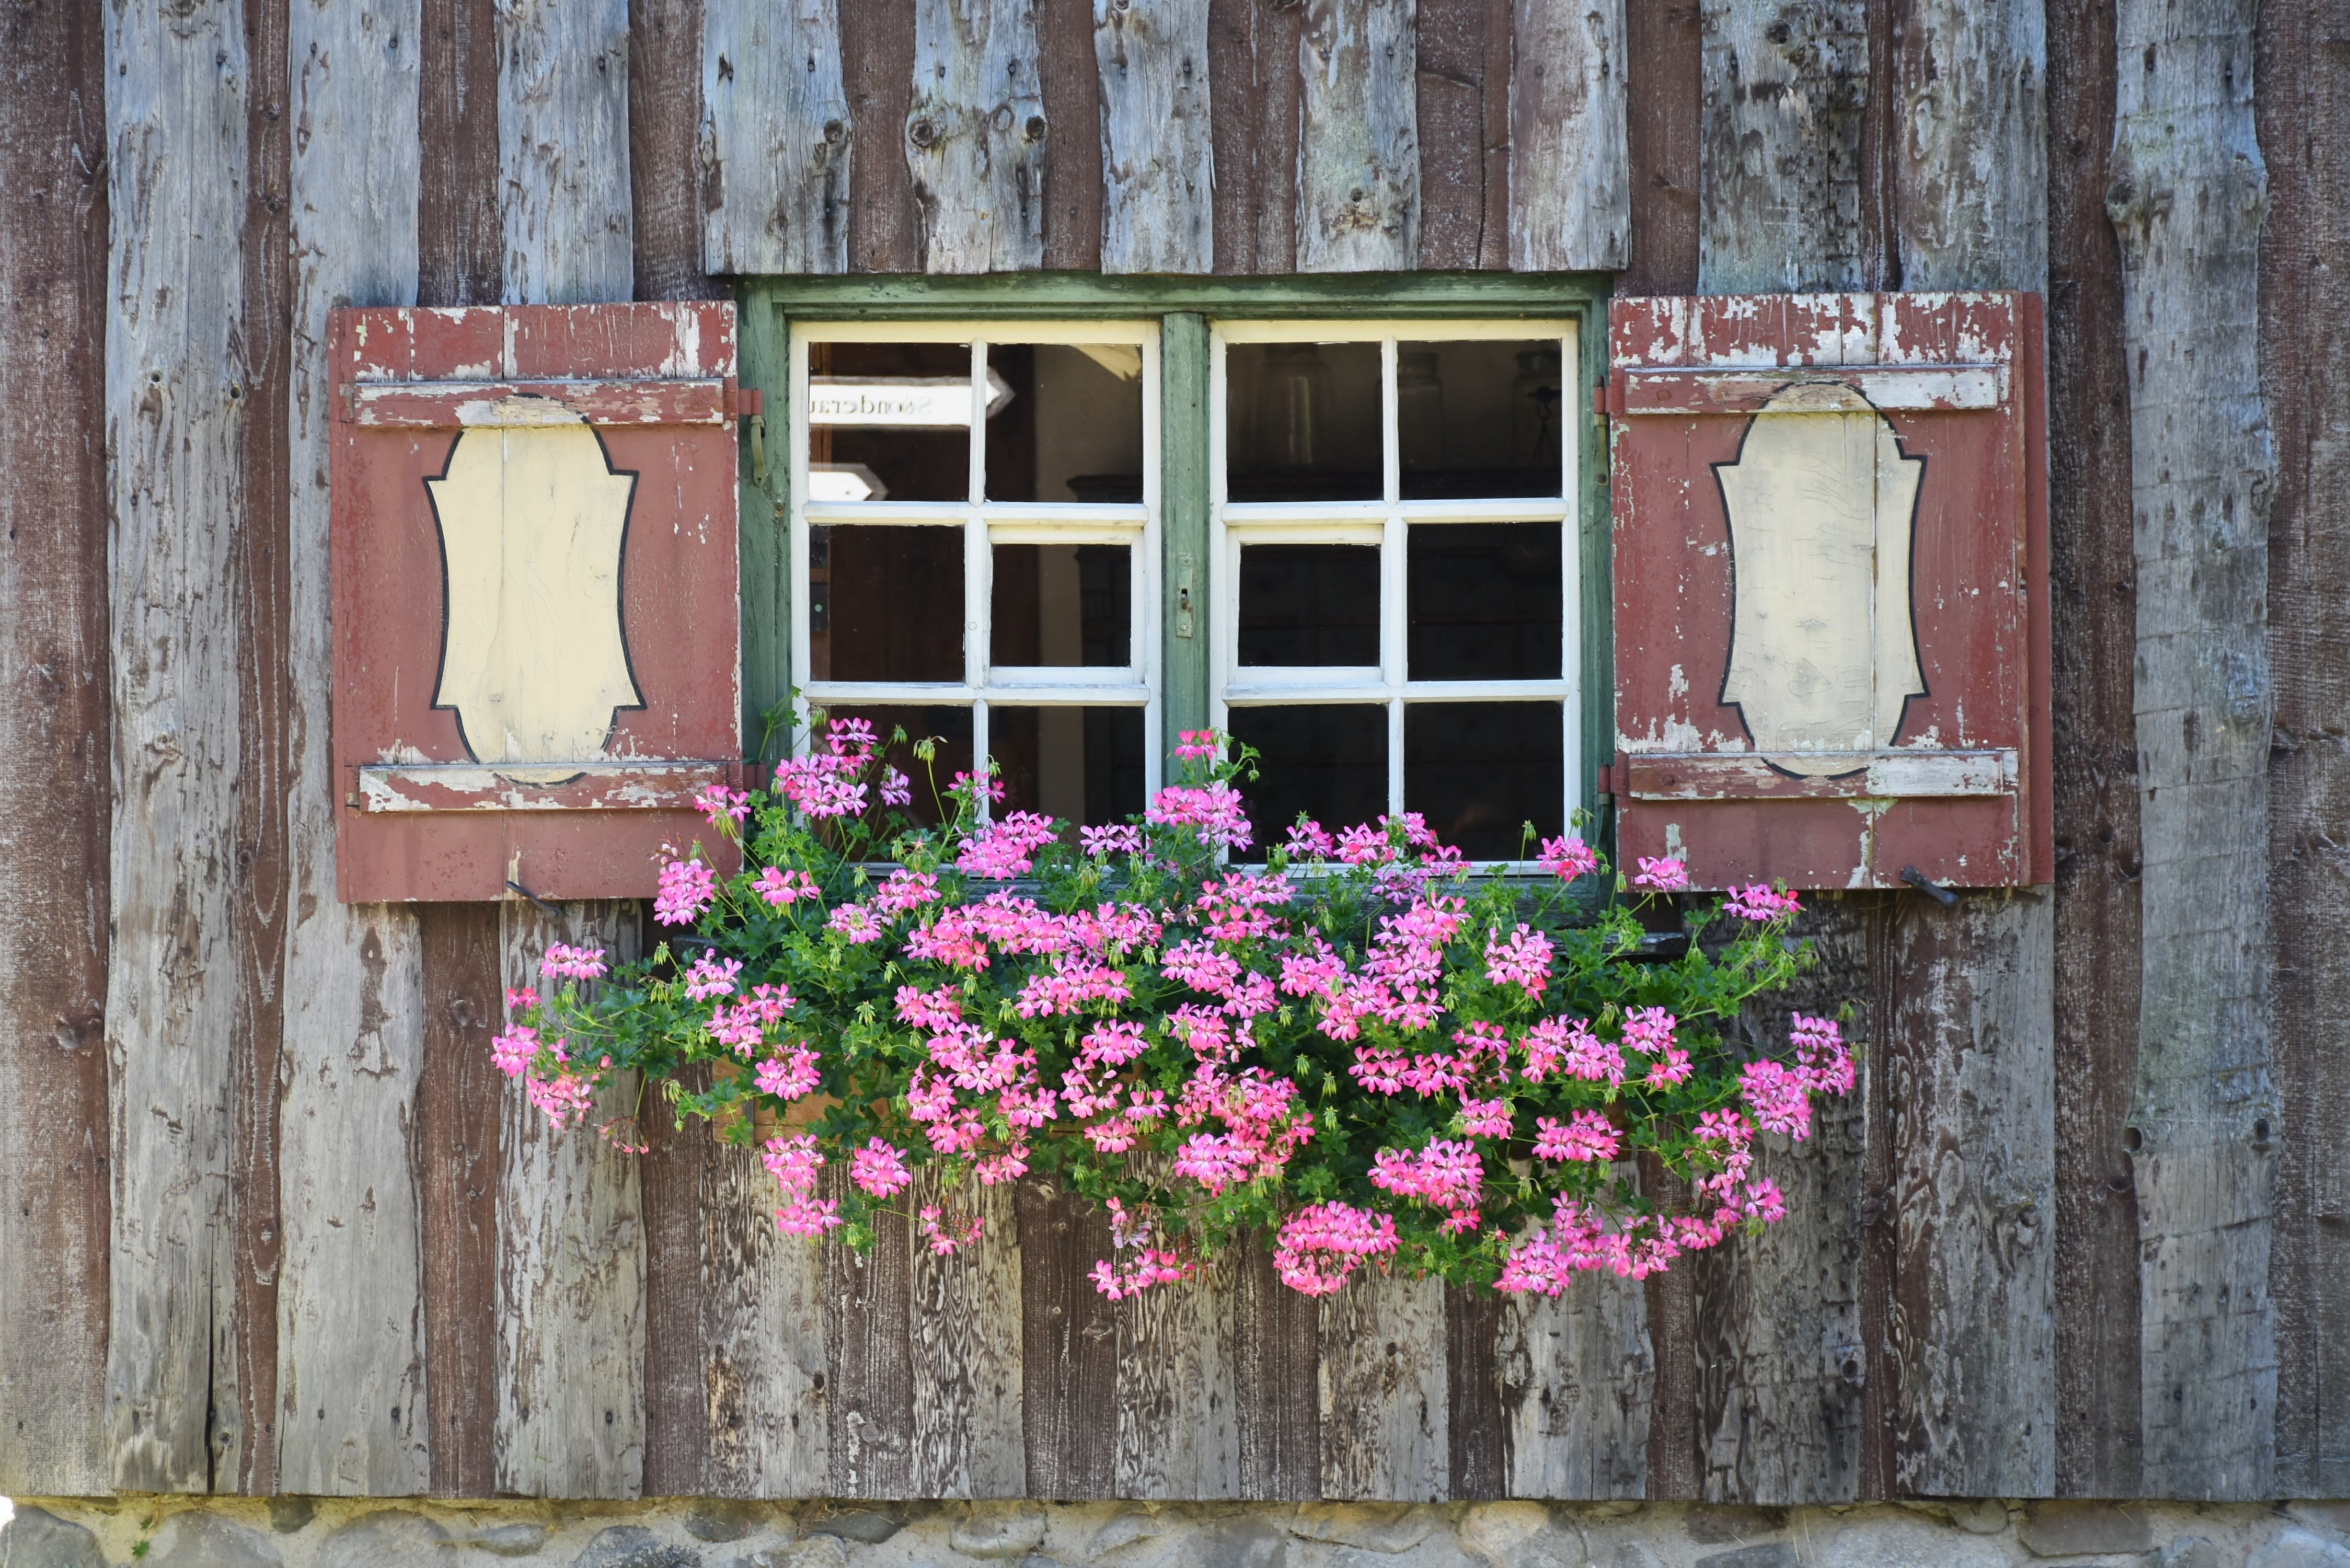 Green and Pink Flower on Green and White Wooden Framed Window